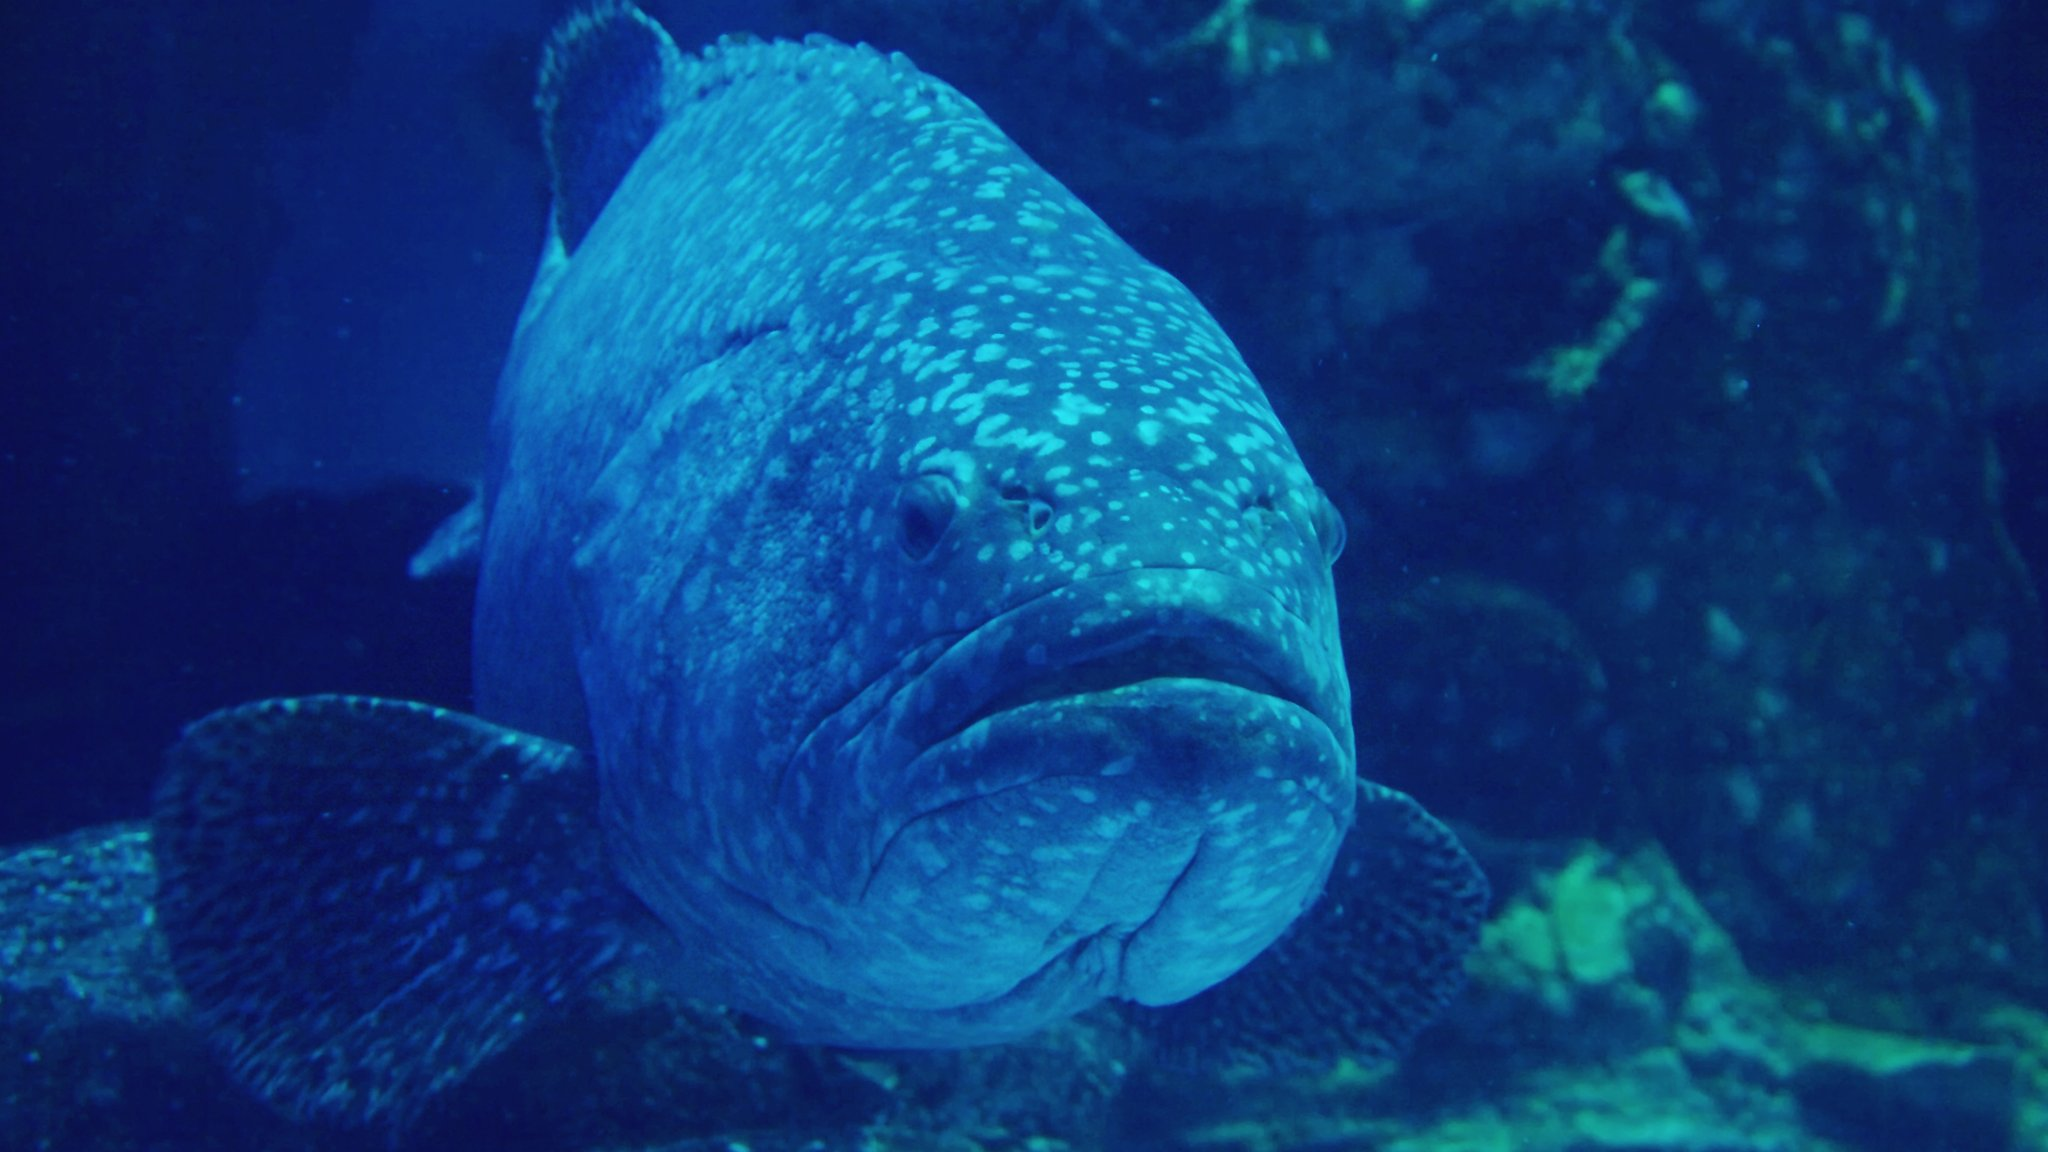 How fish and shrimps could be recruited as underwater spies